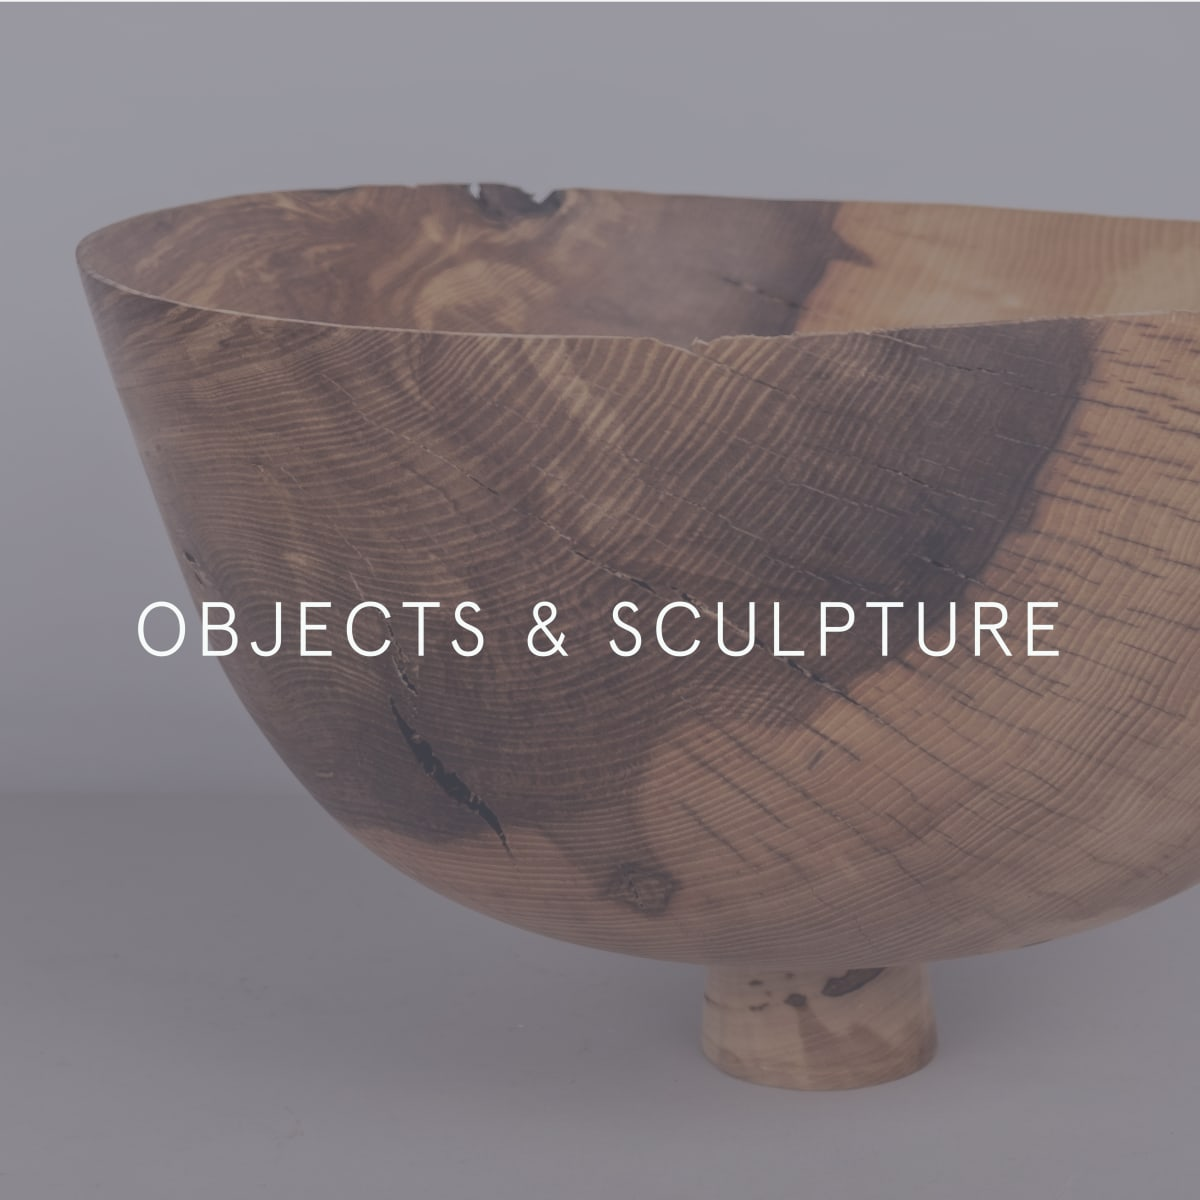 Objects & Sculpture